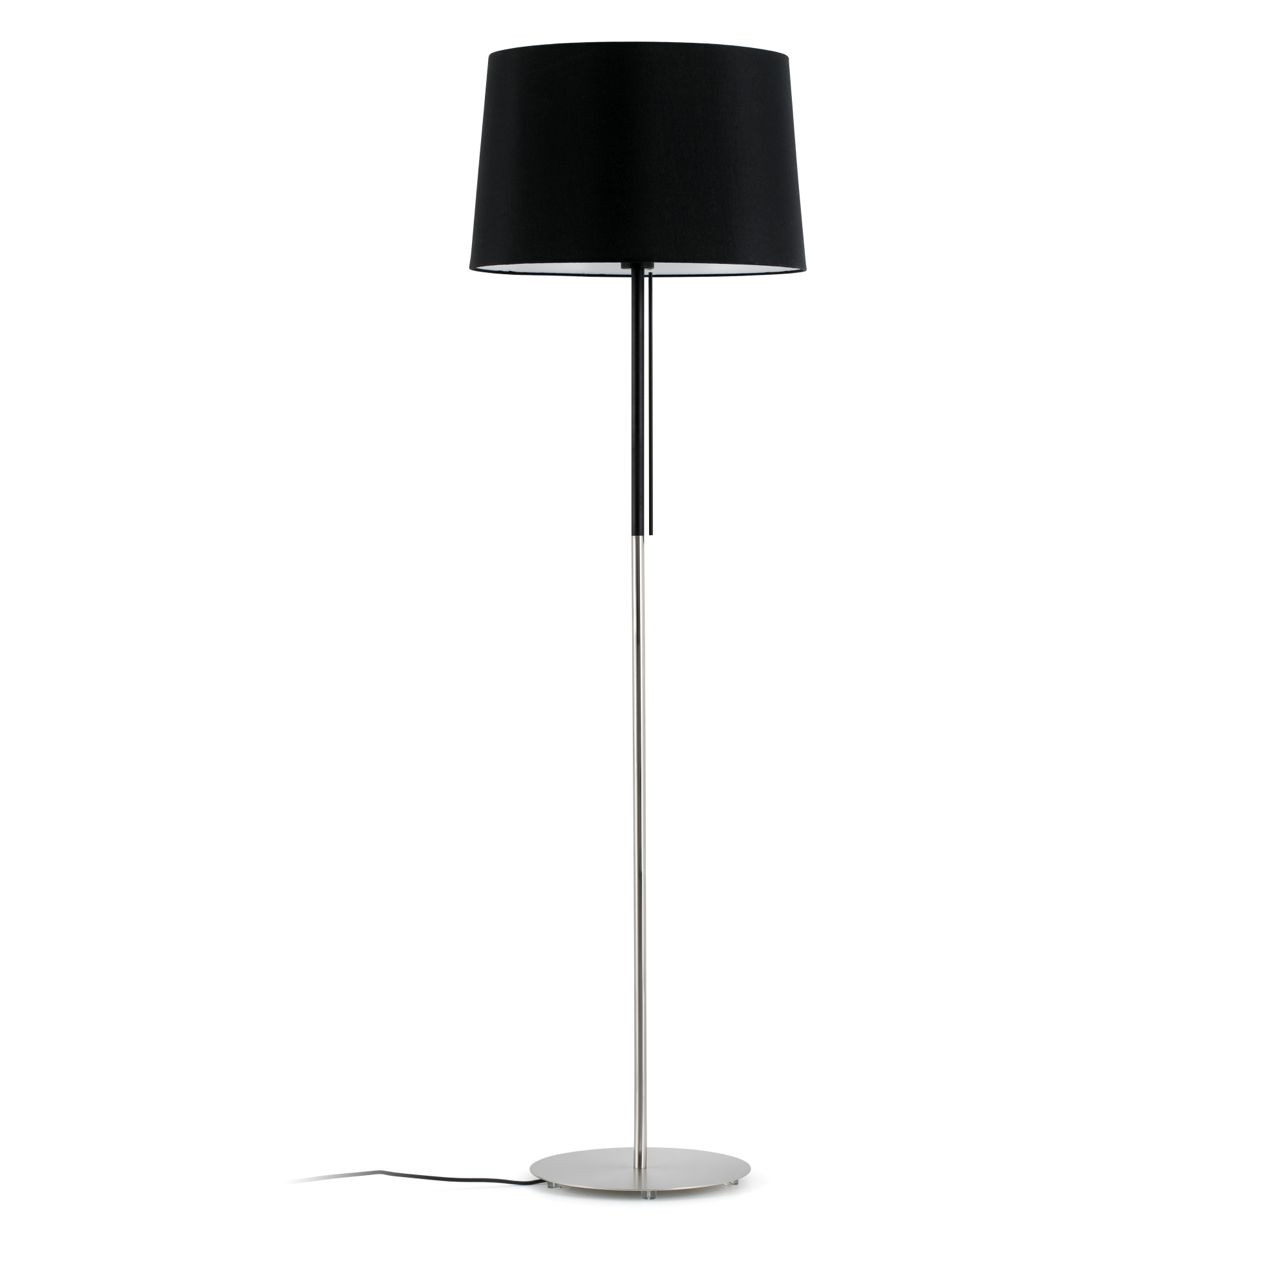 lampara diseno sobrio color negro p 1966